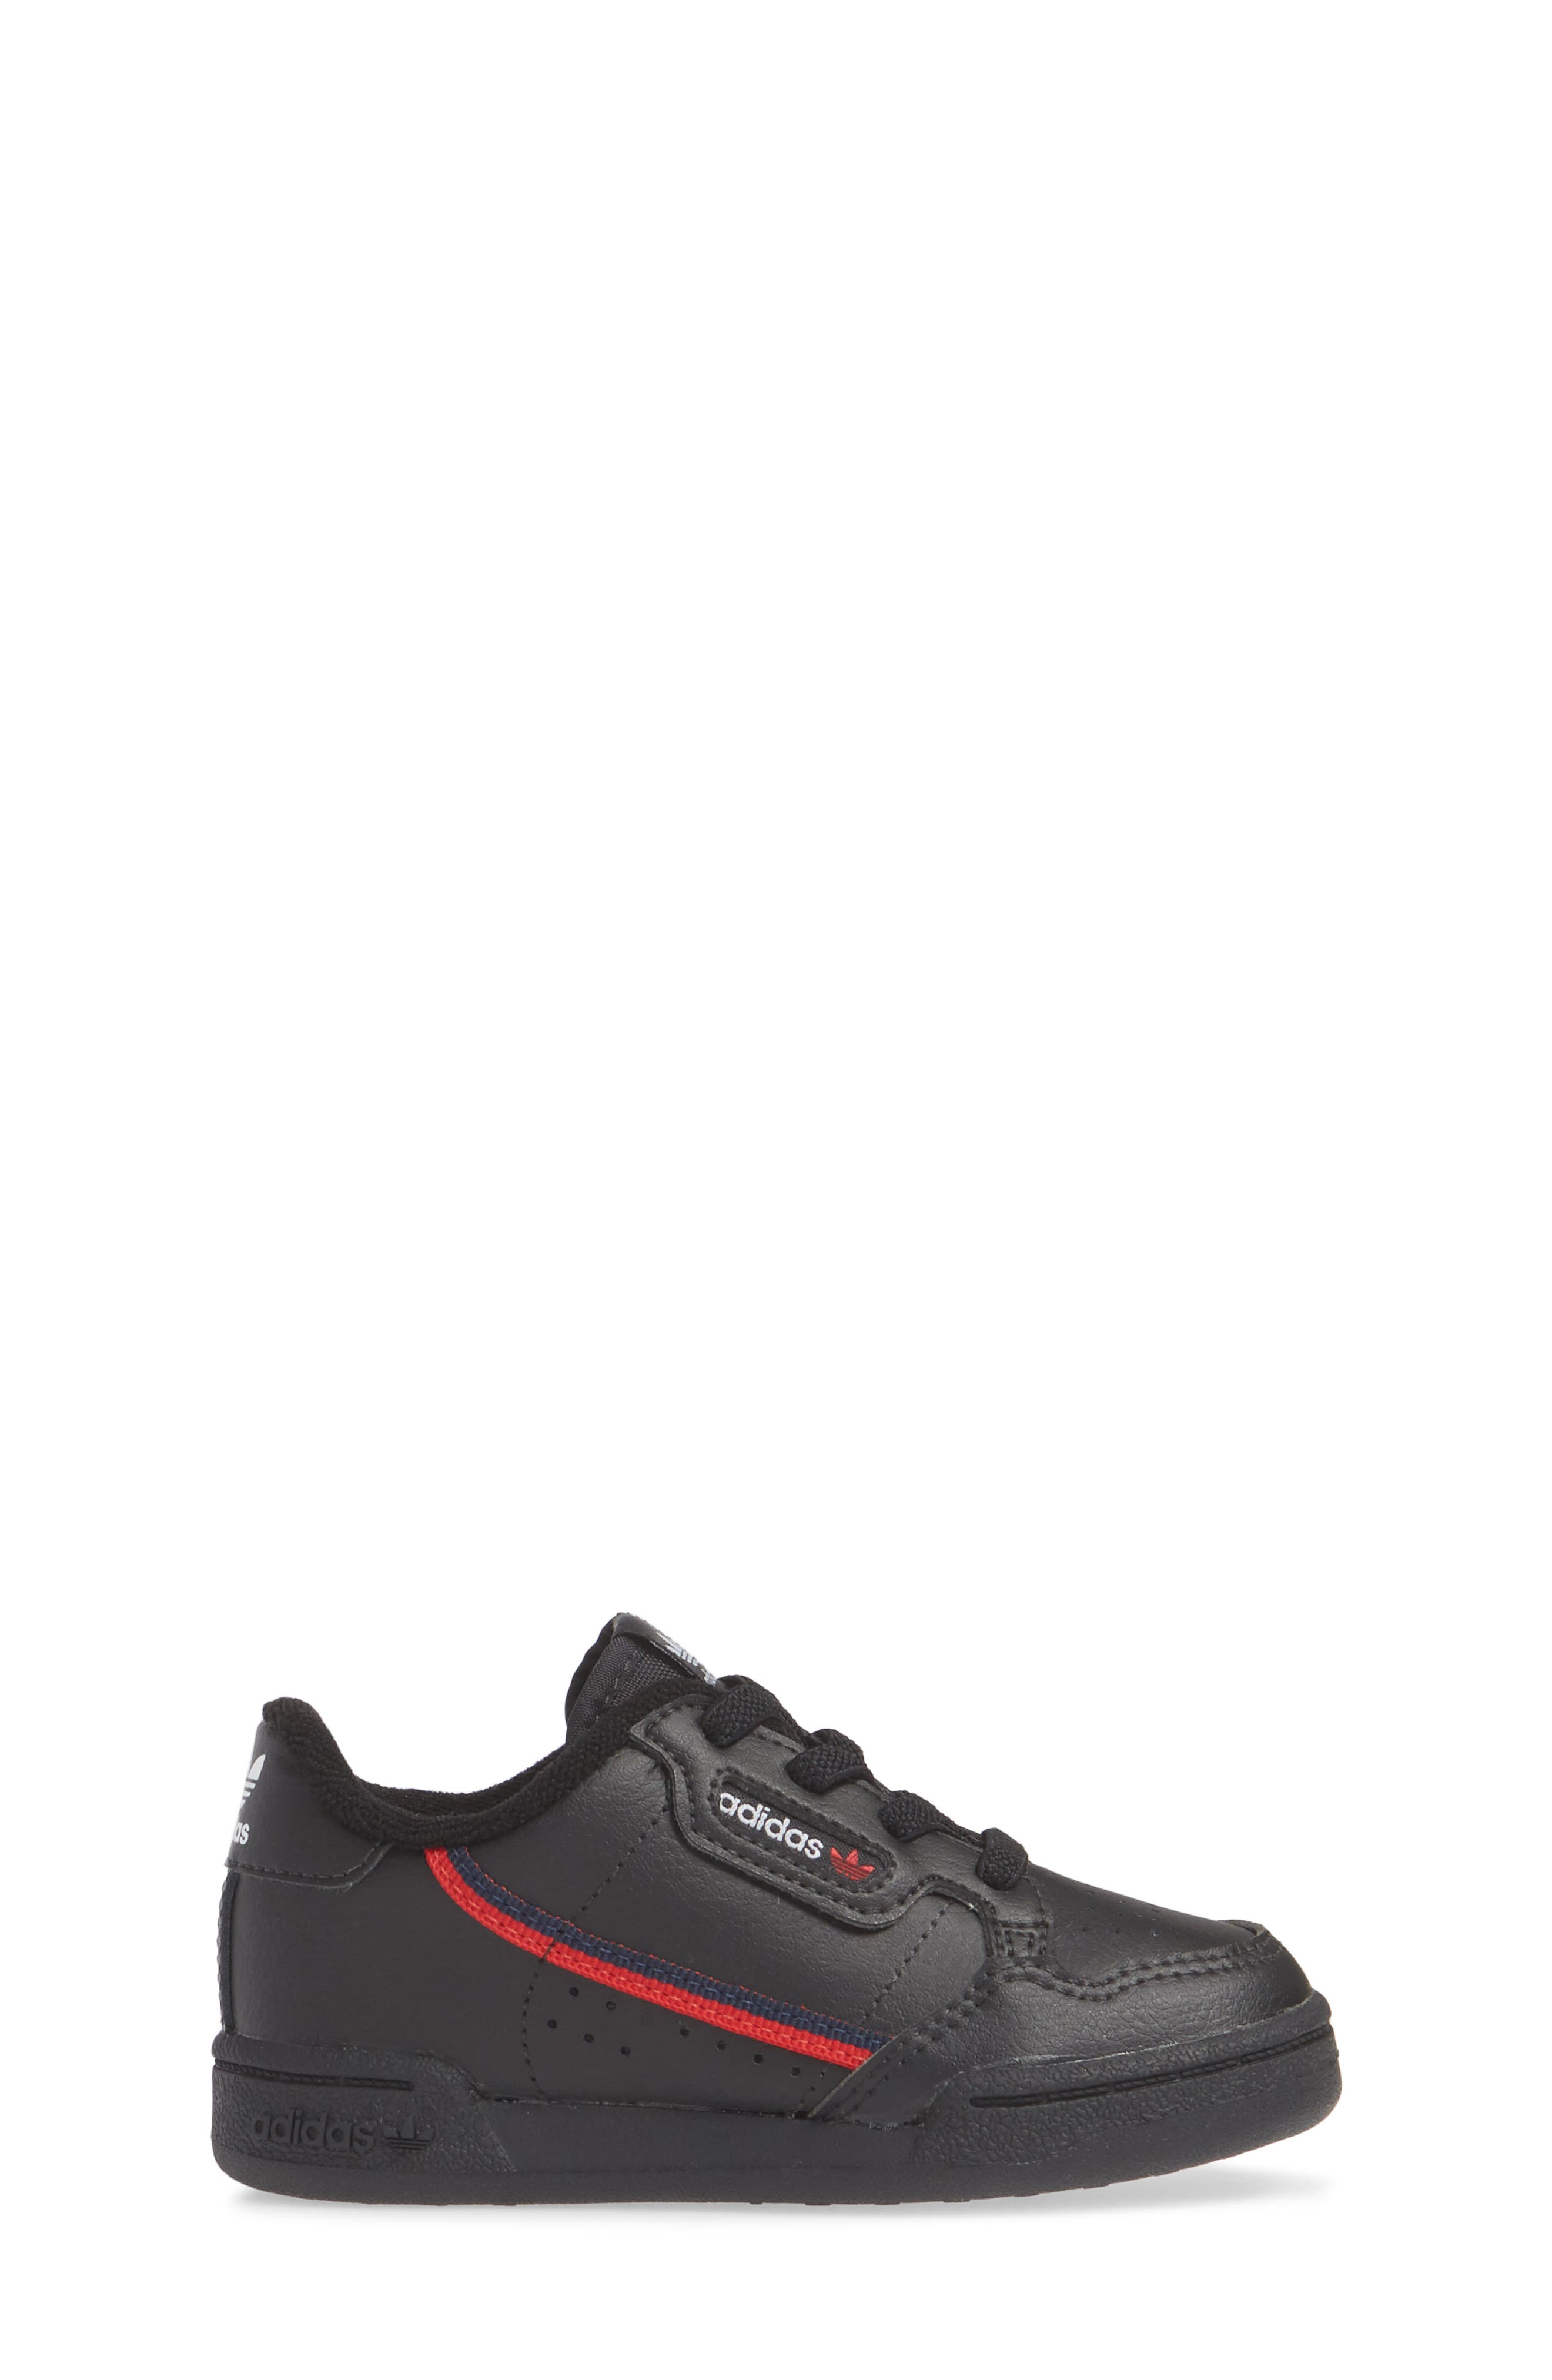 ADIDAS, Continental 80 Sneaker, Alternate thumbnail 3, color, CORE BLACK/ SCARLET/ NAVY